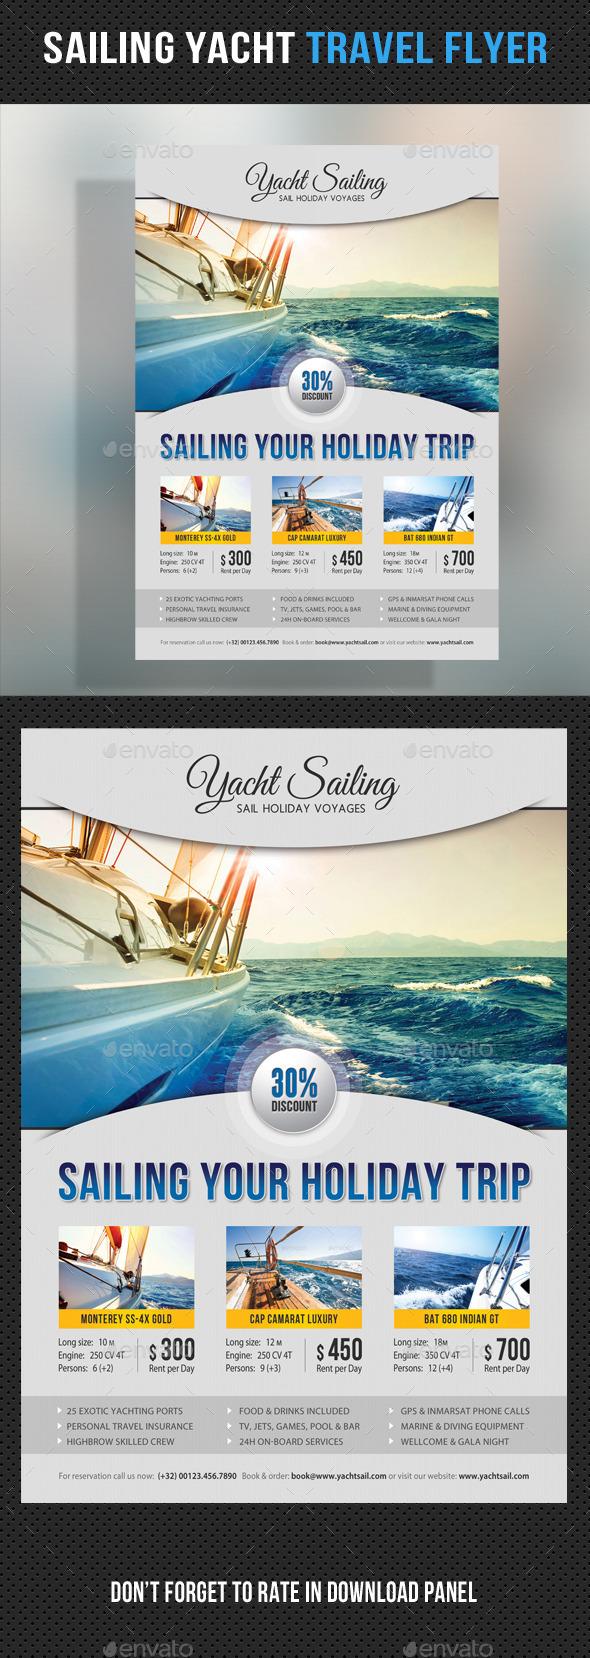 GraphicRiver Sailing Yacht Travel Flyer 07 11861990